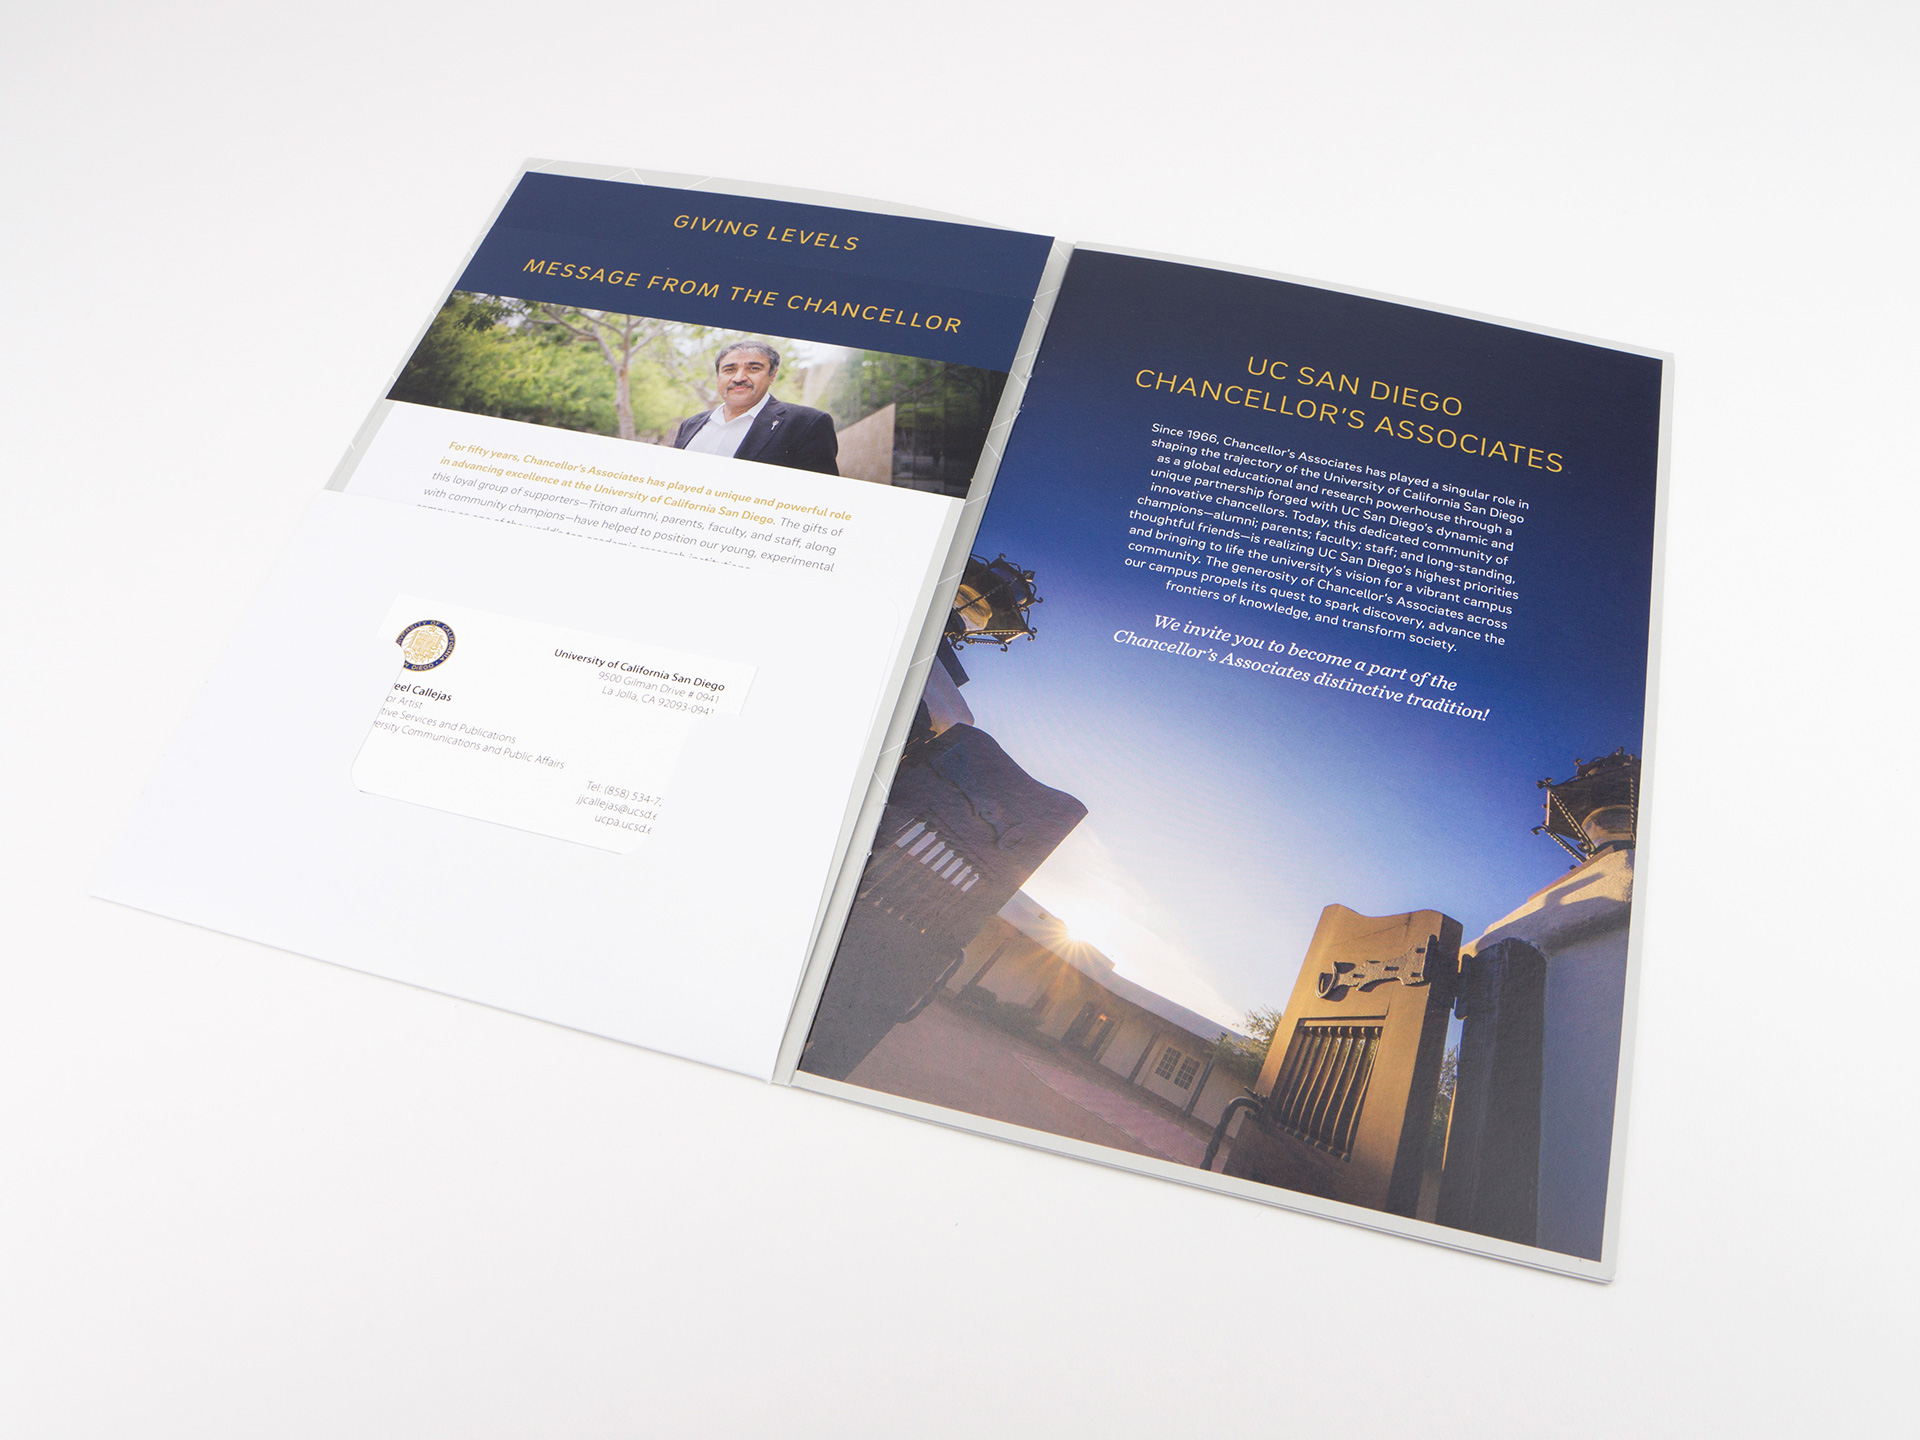 UC San Diego - Chancellor's Associates Solicitation Packet